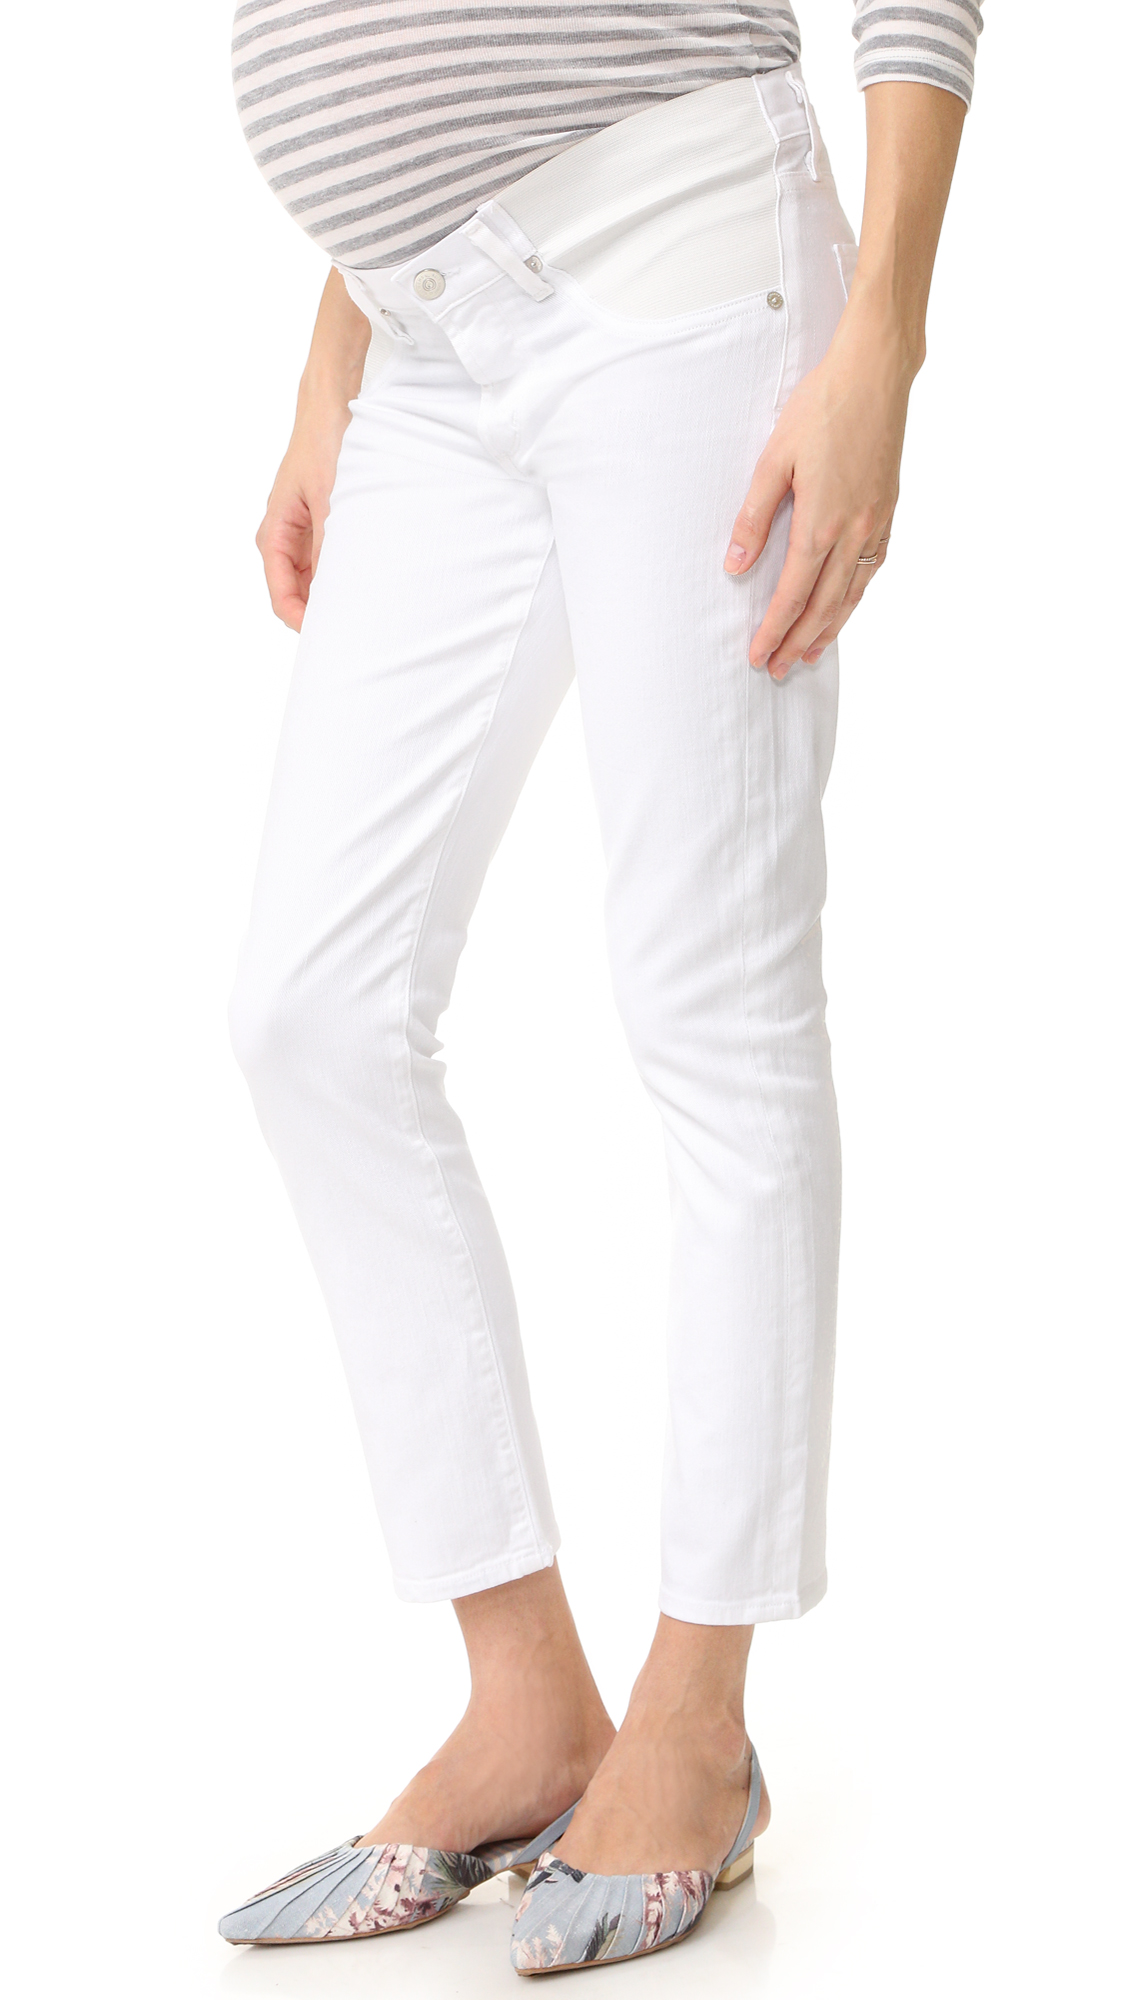 Citizens Of Humanity Phoebe Maternity Jeans - Santorini